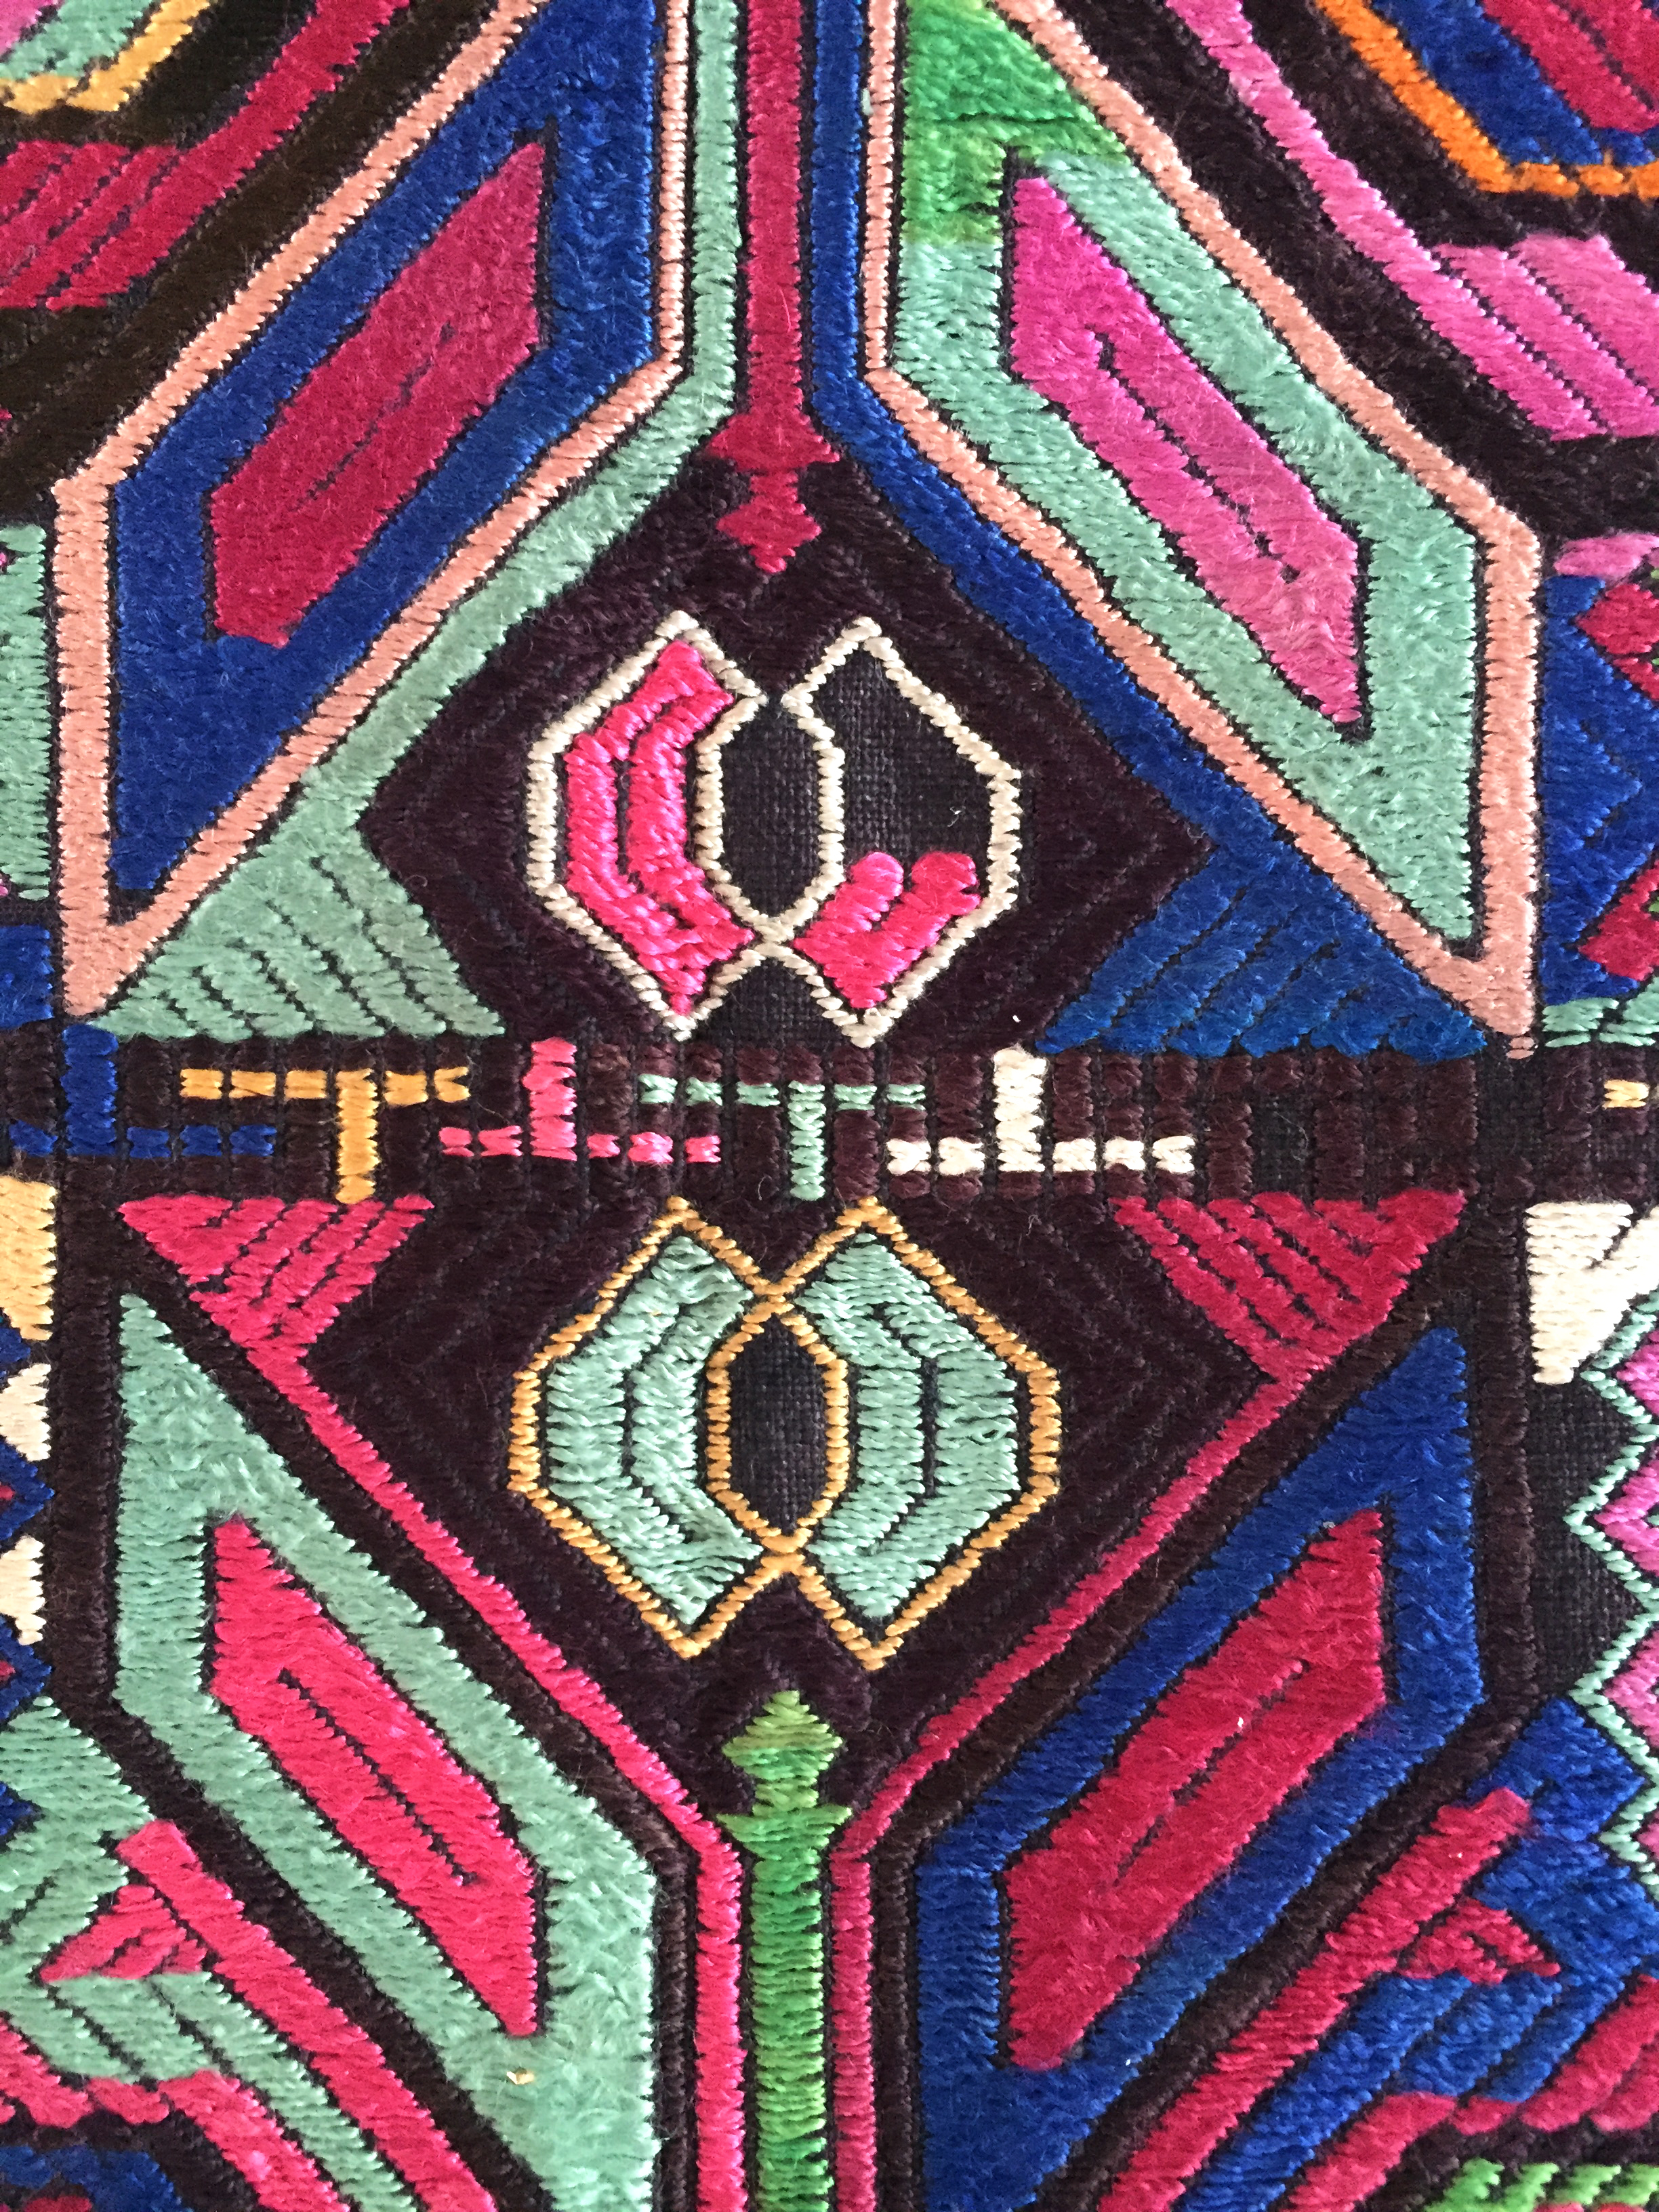 Miao embroidery with satin stitch from Guizhou, China. Yang Wen Bin Collection.